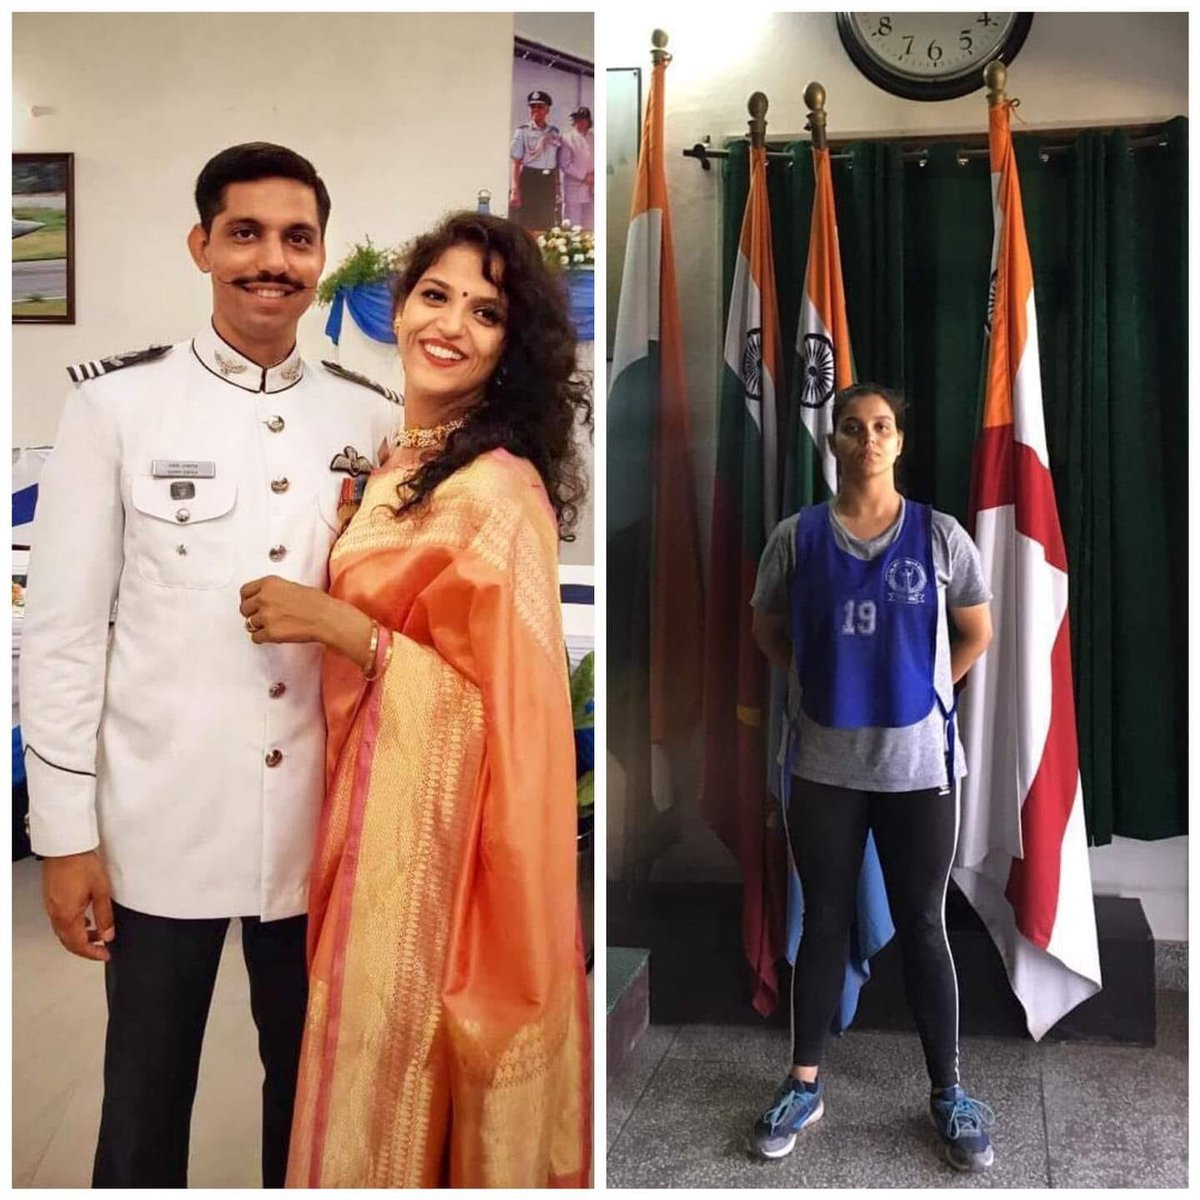 Proud Moment 🇮🇳❤️🇮🇳 Garima Abrol Wife Of Sqn Ldr Samir Abrol commissioned into the Indian Air Force Today. Sqn Ldr Samir Abrol lost his life after Mirage 2000 Crash on feb Last Year. . #IndianAirForce #IAF #AirWarrior #airforceacademy #women #Womenofficer #JaiHind